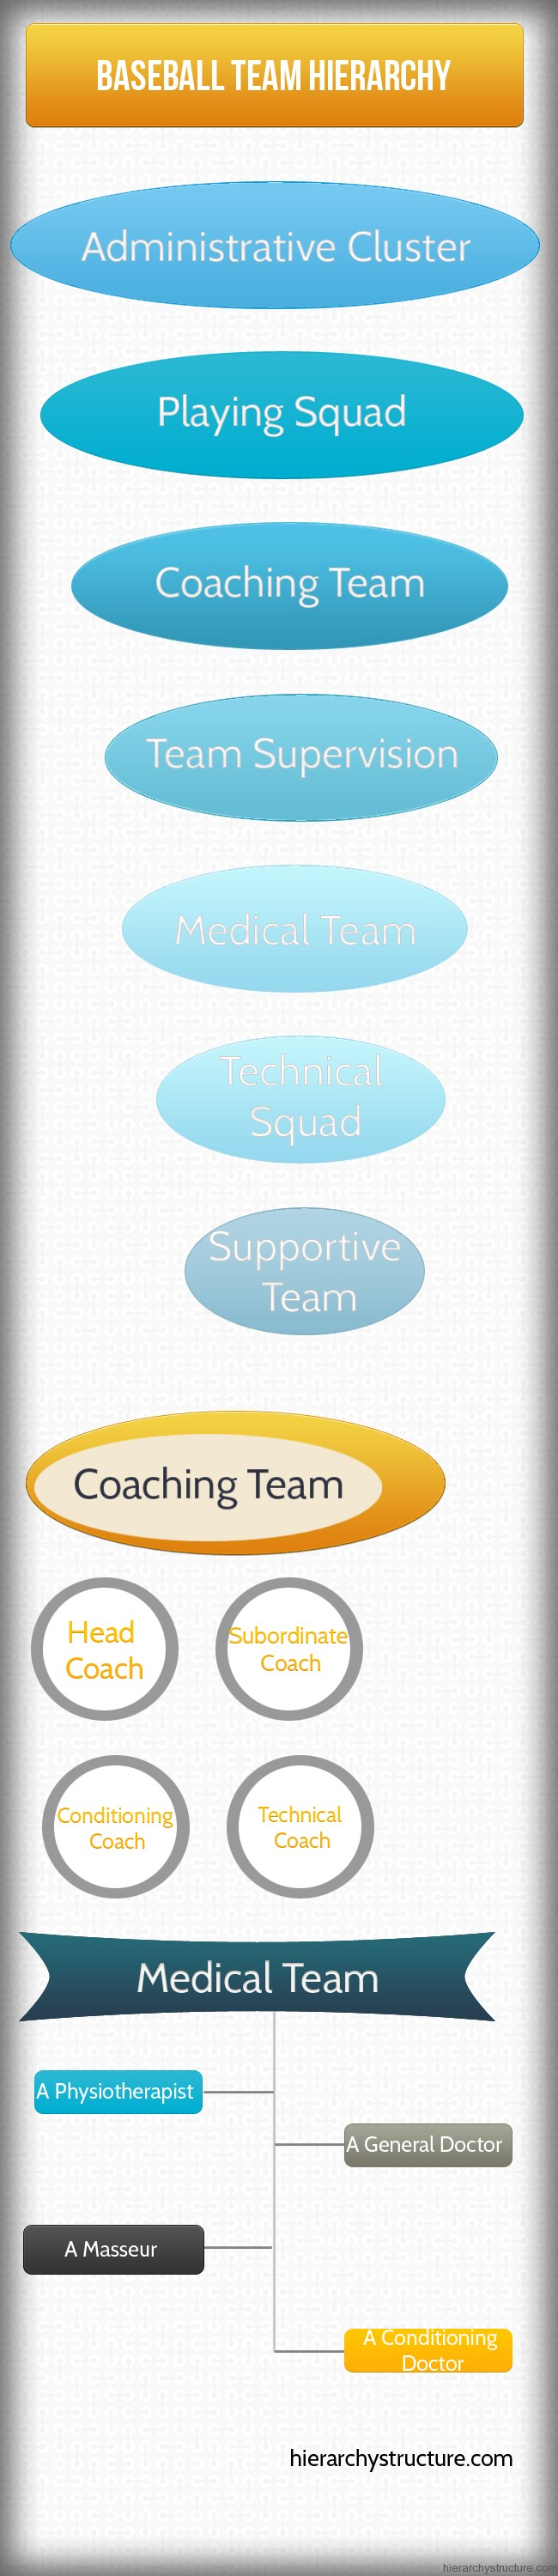 Baseball Team Hierarchy